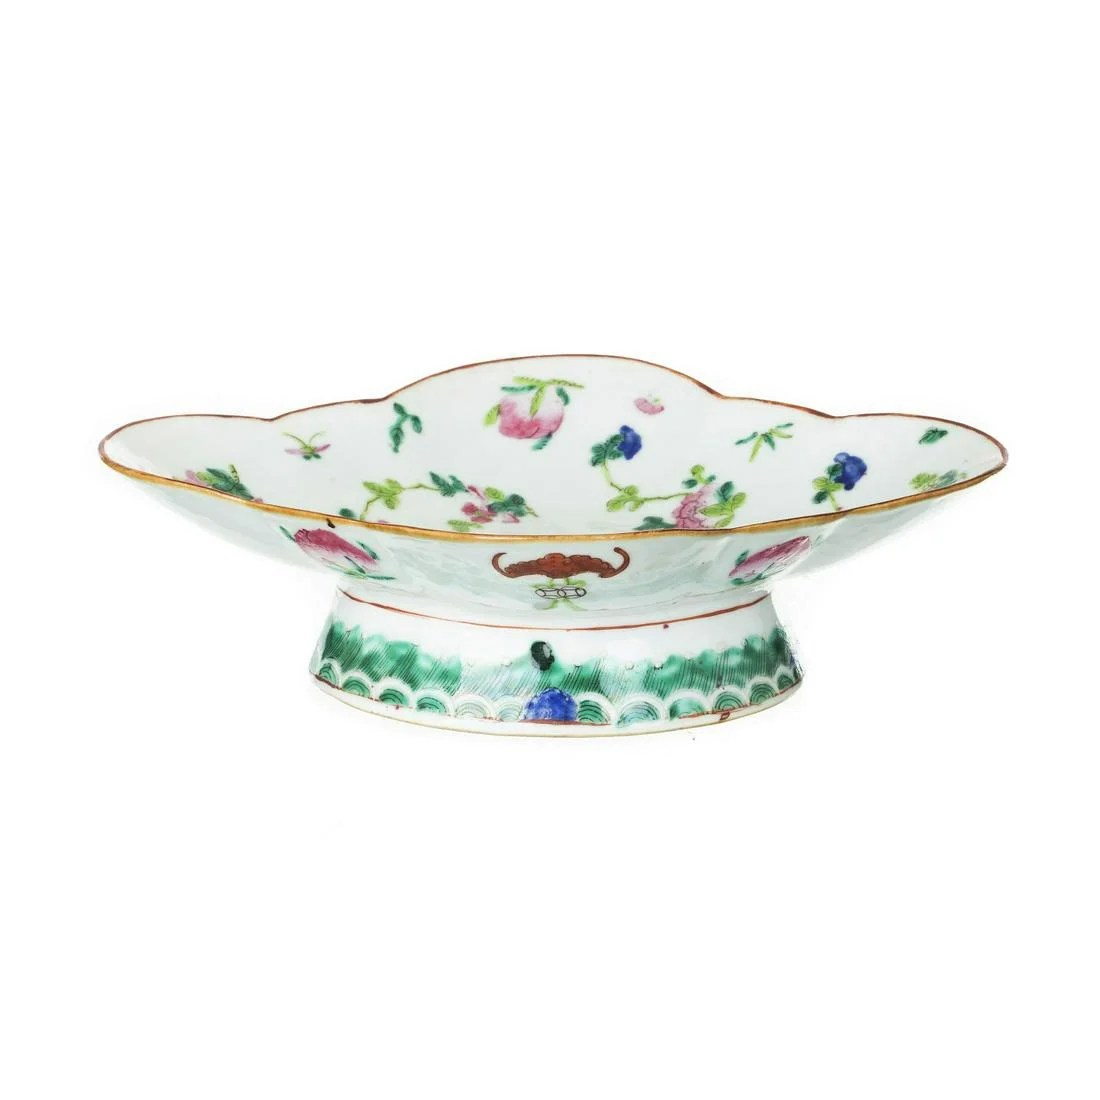 Chinese porcelain bowl, Tongzhi